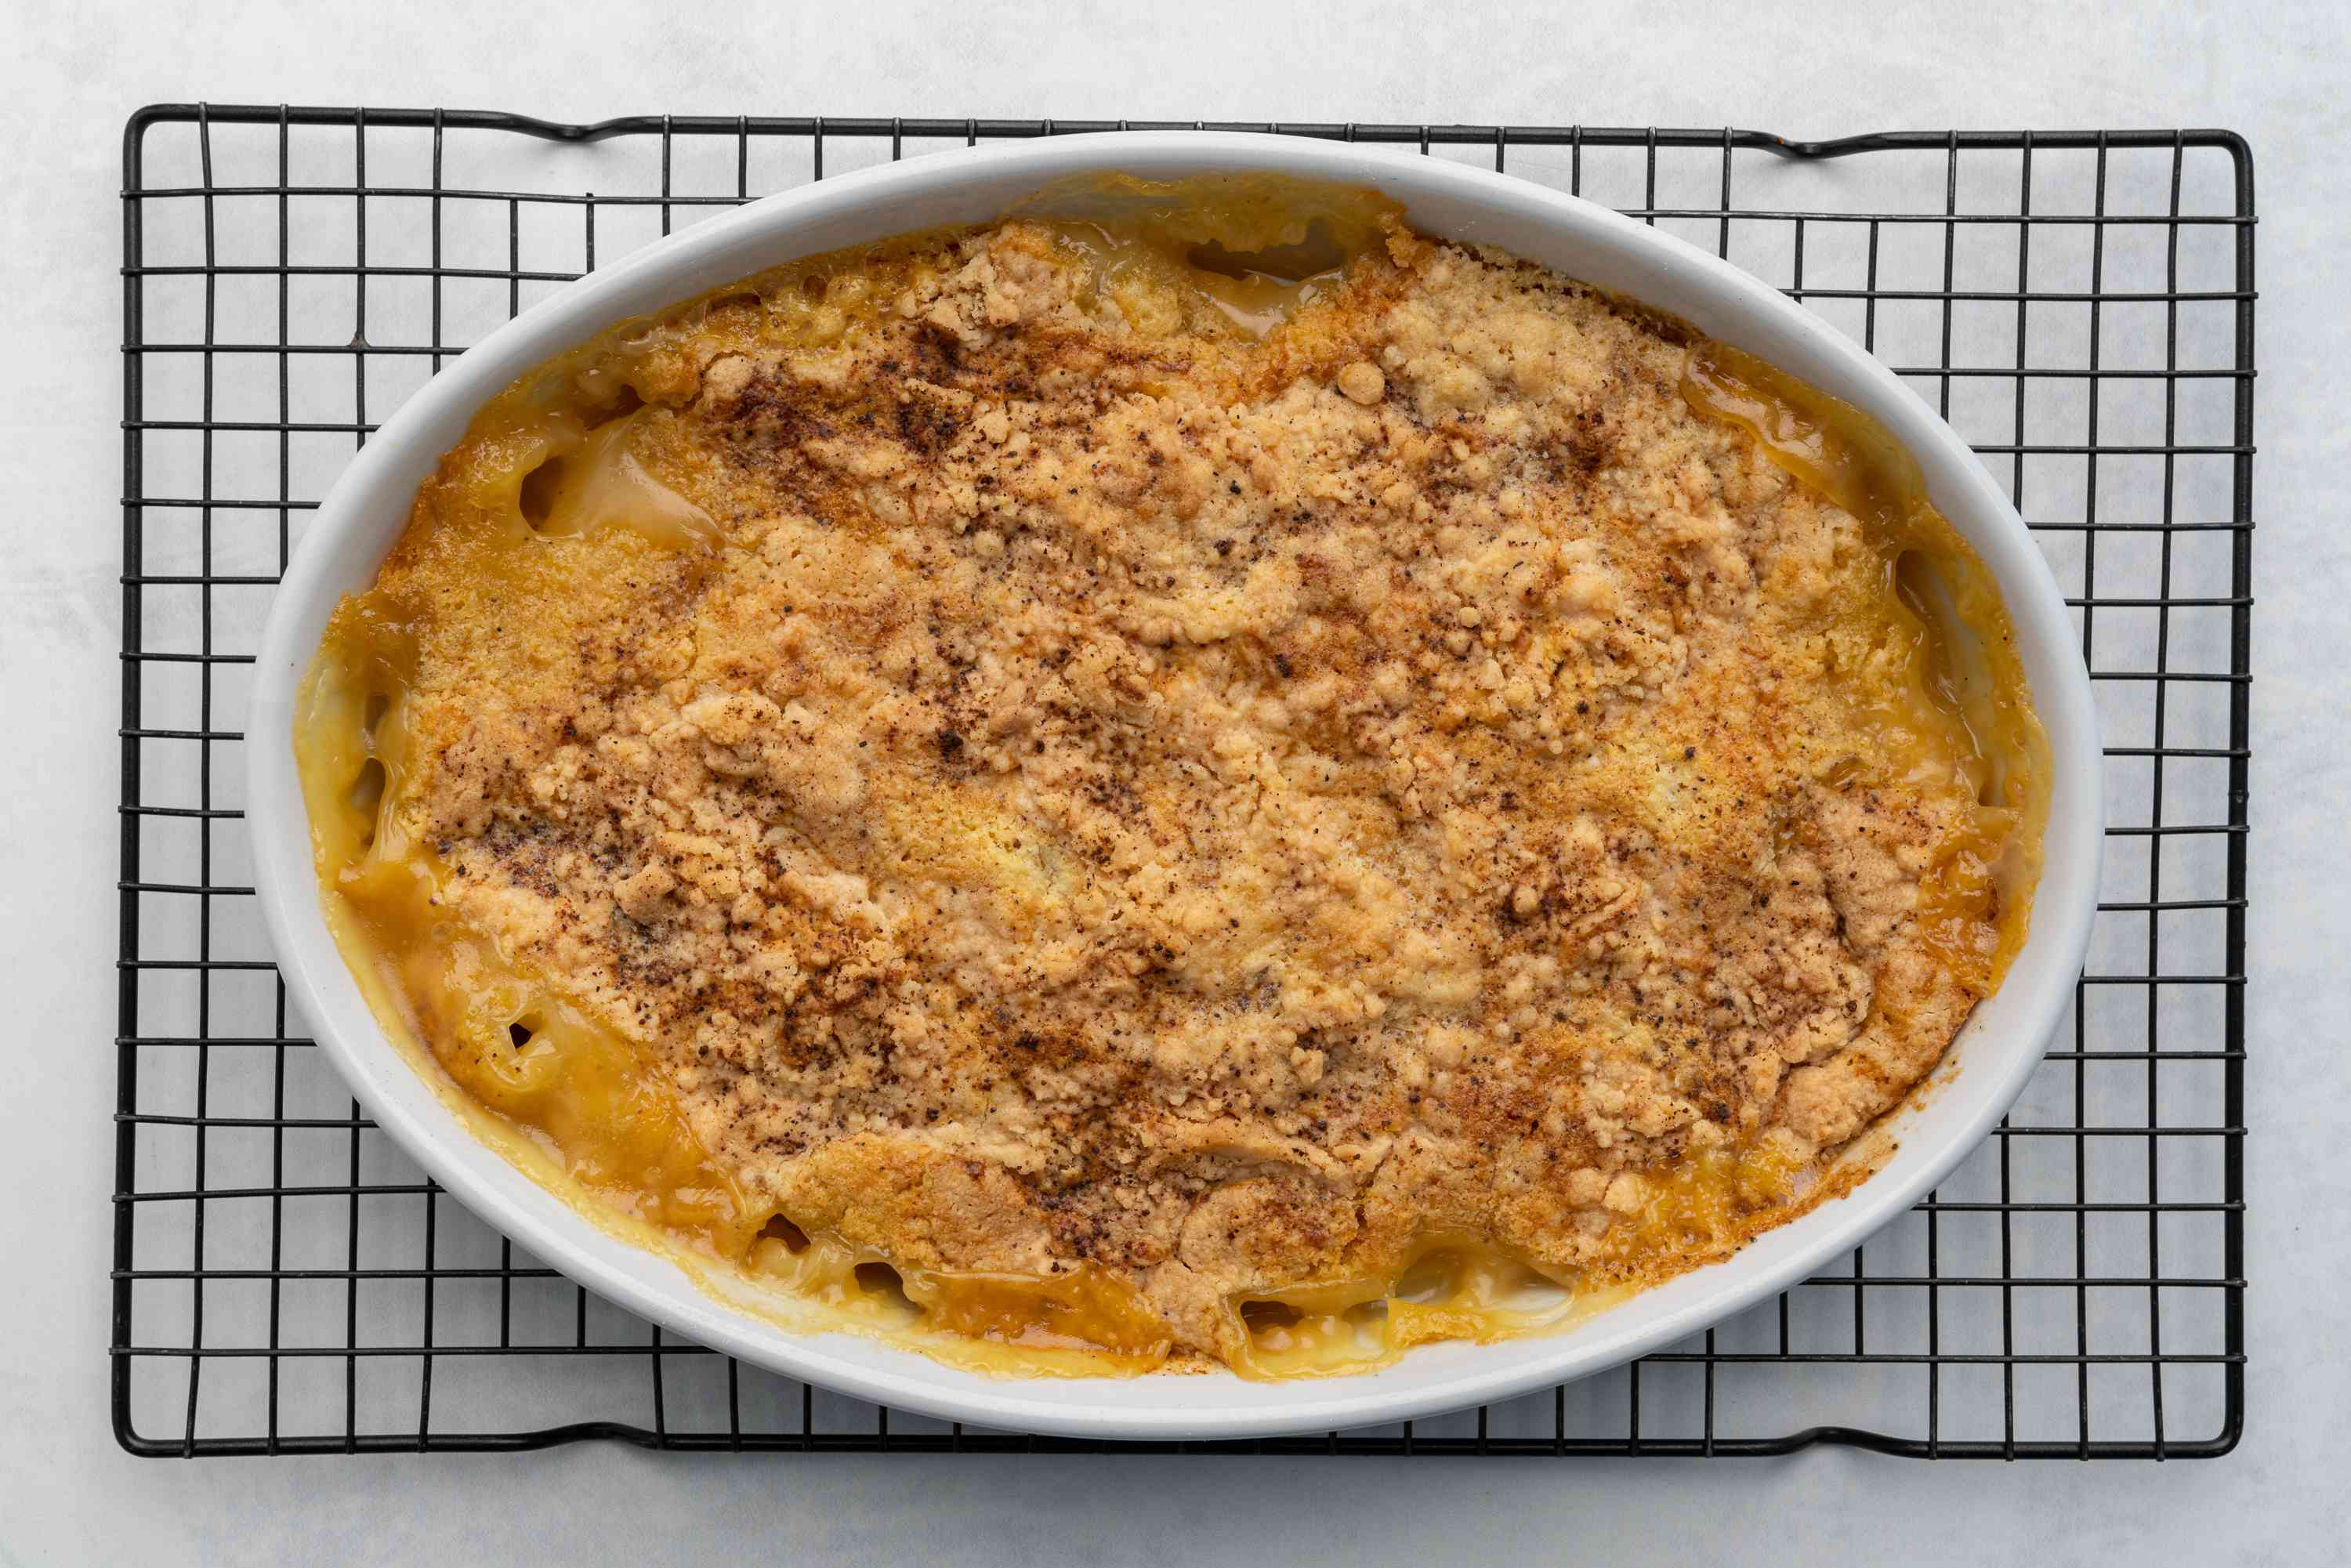 Canned Pear Cobbler Made With Cake Mix in a baking dish on a cooling rack